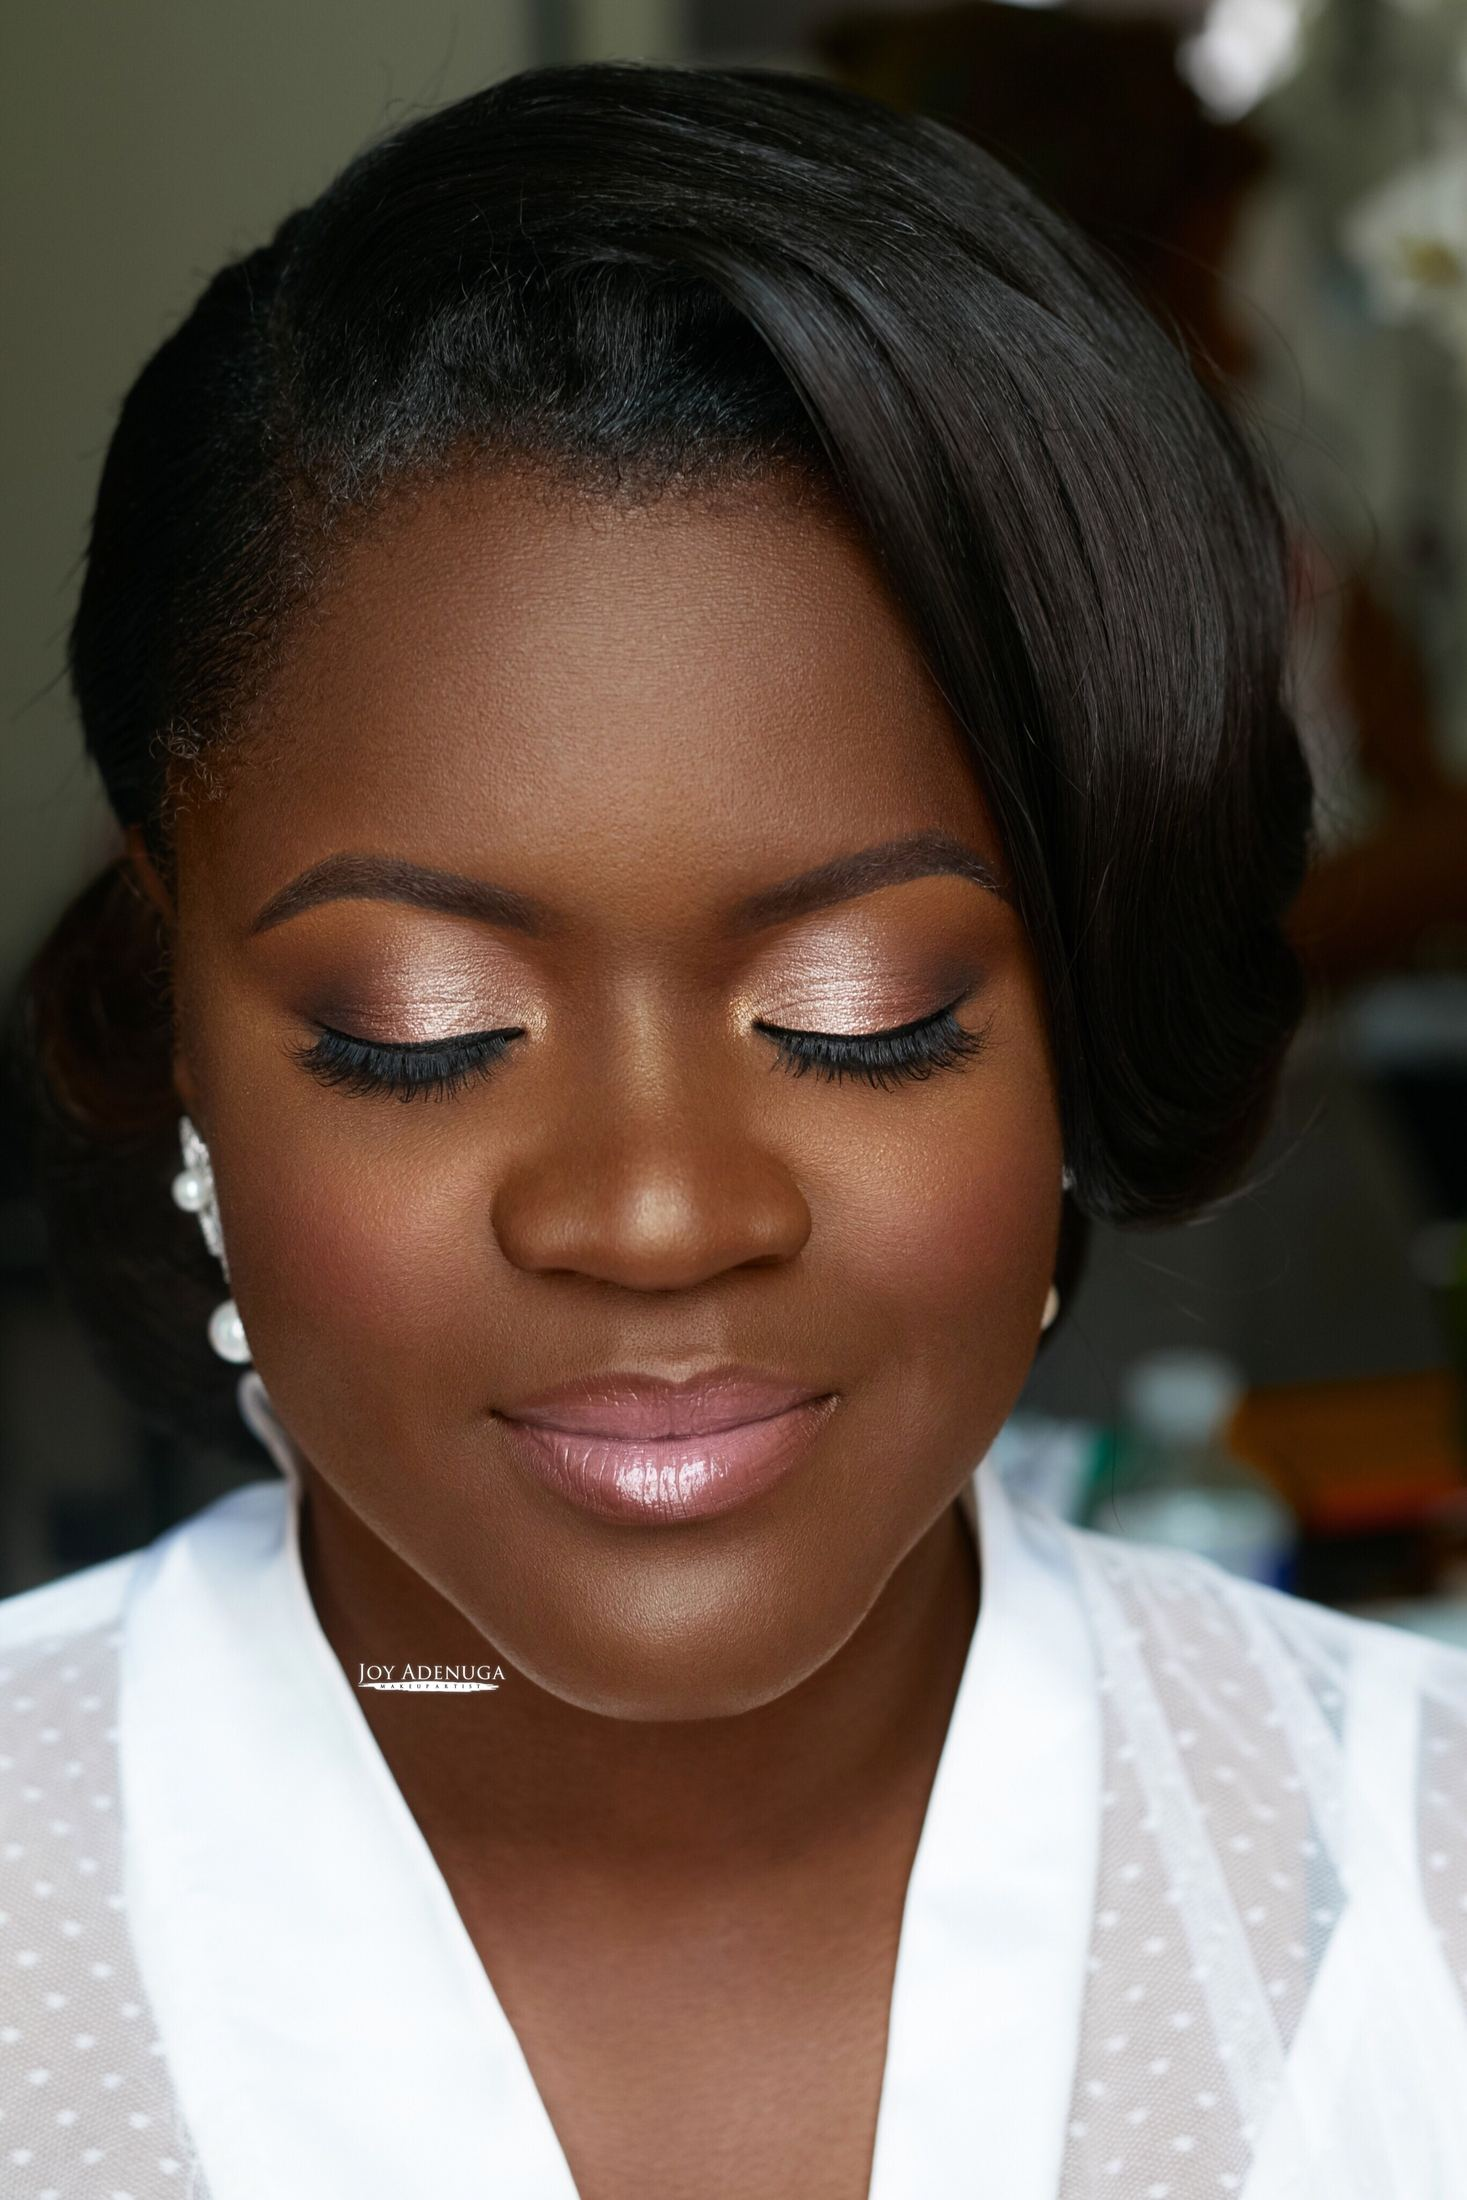 Yewande's Wedding, Yoruba bride, Joy adenuga, black bride, black bridal blog london, london black makeup artist, london makeup artist for black skin, black bridal makeup artist london, makeup artist for black skin, nigerian makeup artist london, makeup artist for women of colour